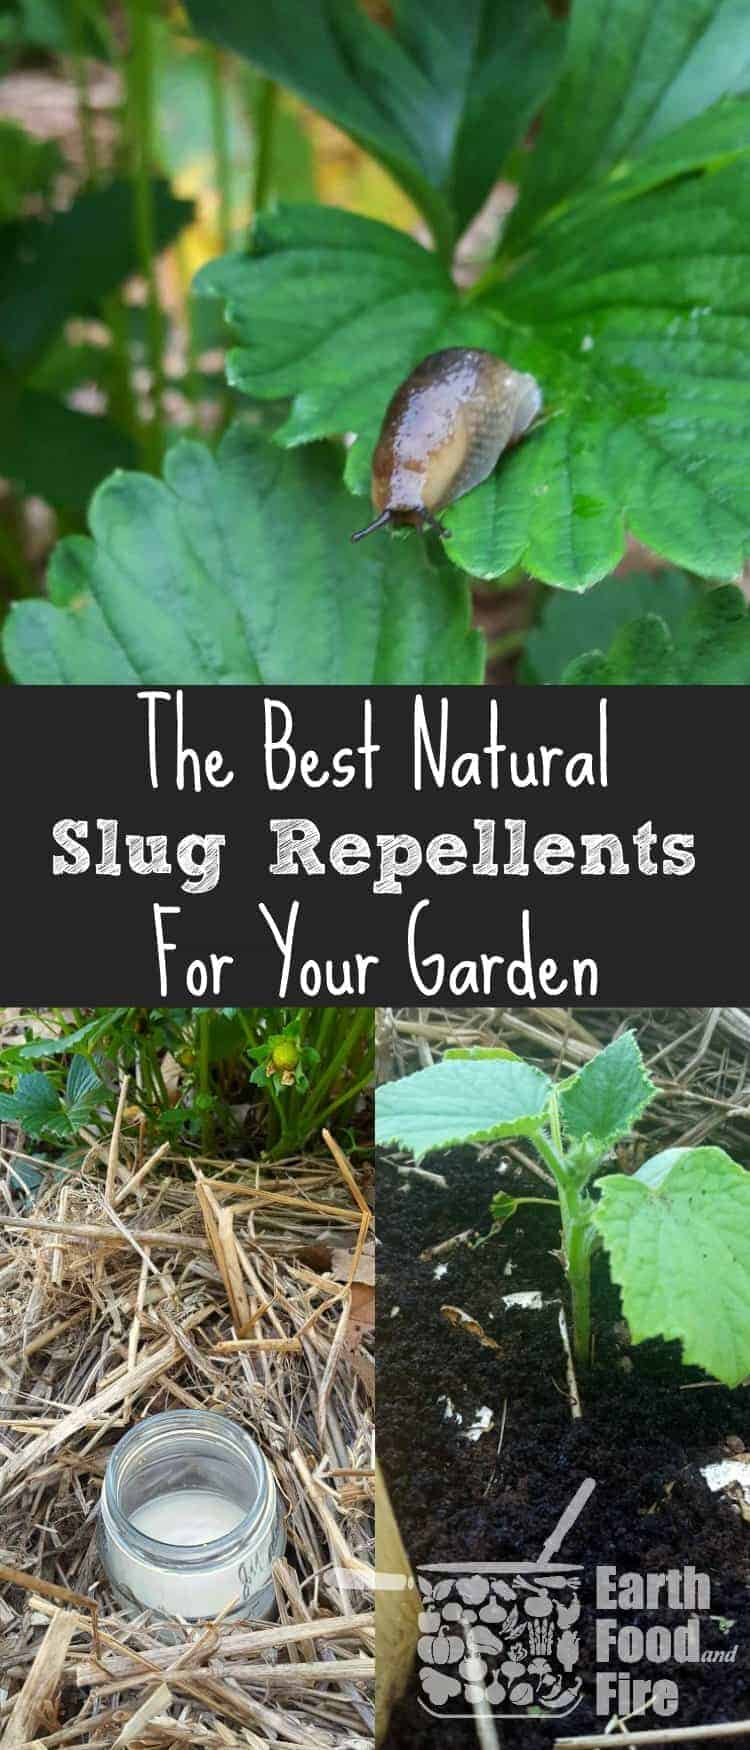 Every gardener that grows their own vegetables, has had a battle with slugs. Fortunately all is not lost! Learn how to get rid of slugs in your garden using natural methods and deterrents. Perfect for use when pets or children are around, and won't damage your plants.